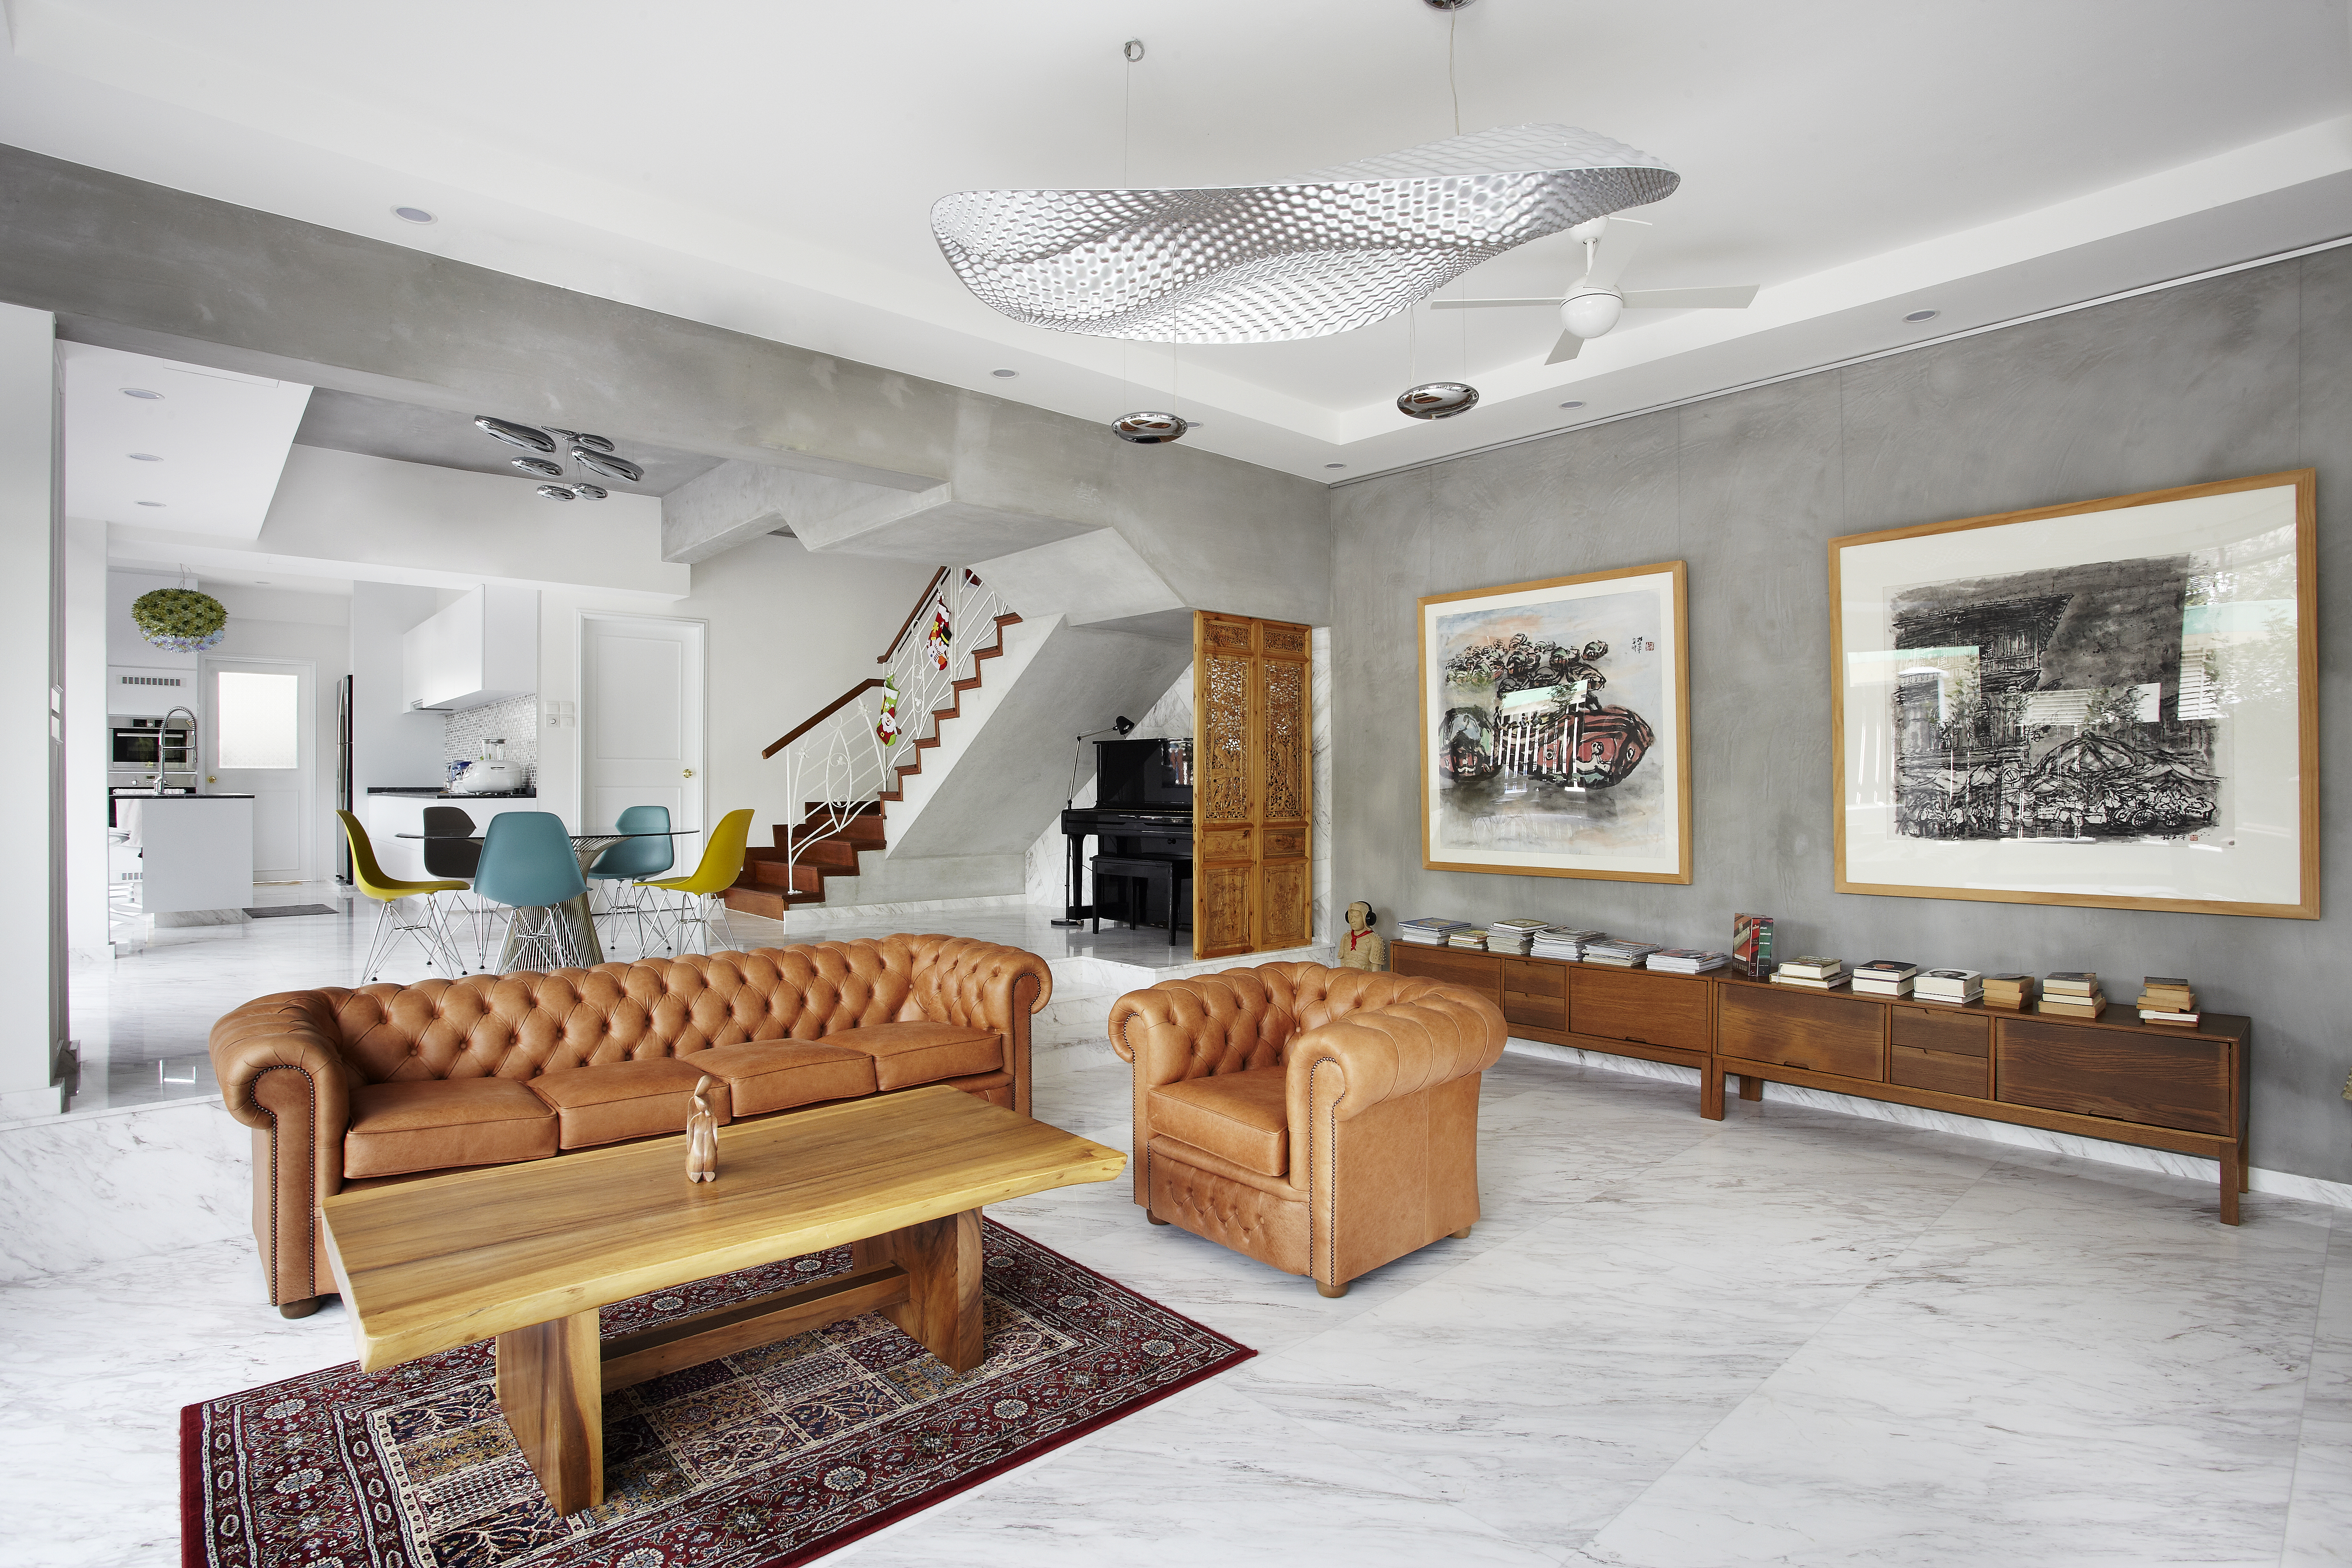 Free Space Intent, eclectic interior design Singapore, renovation